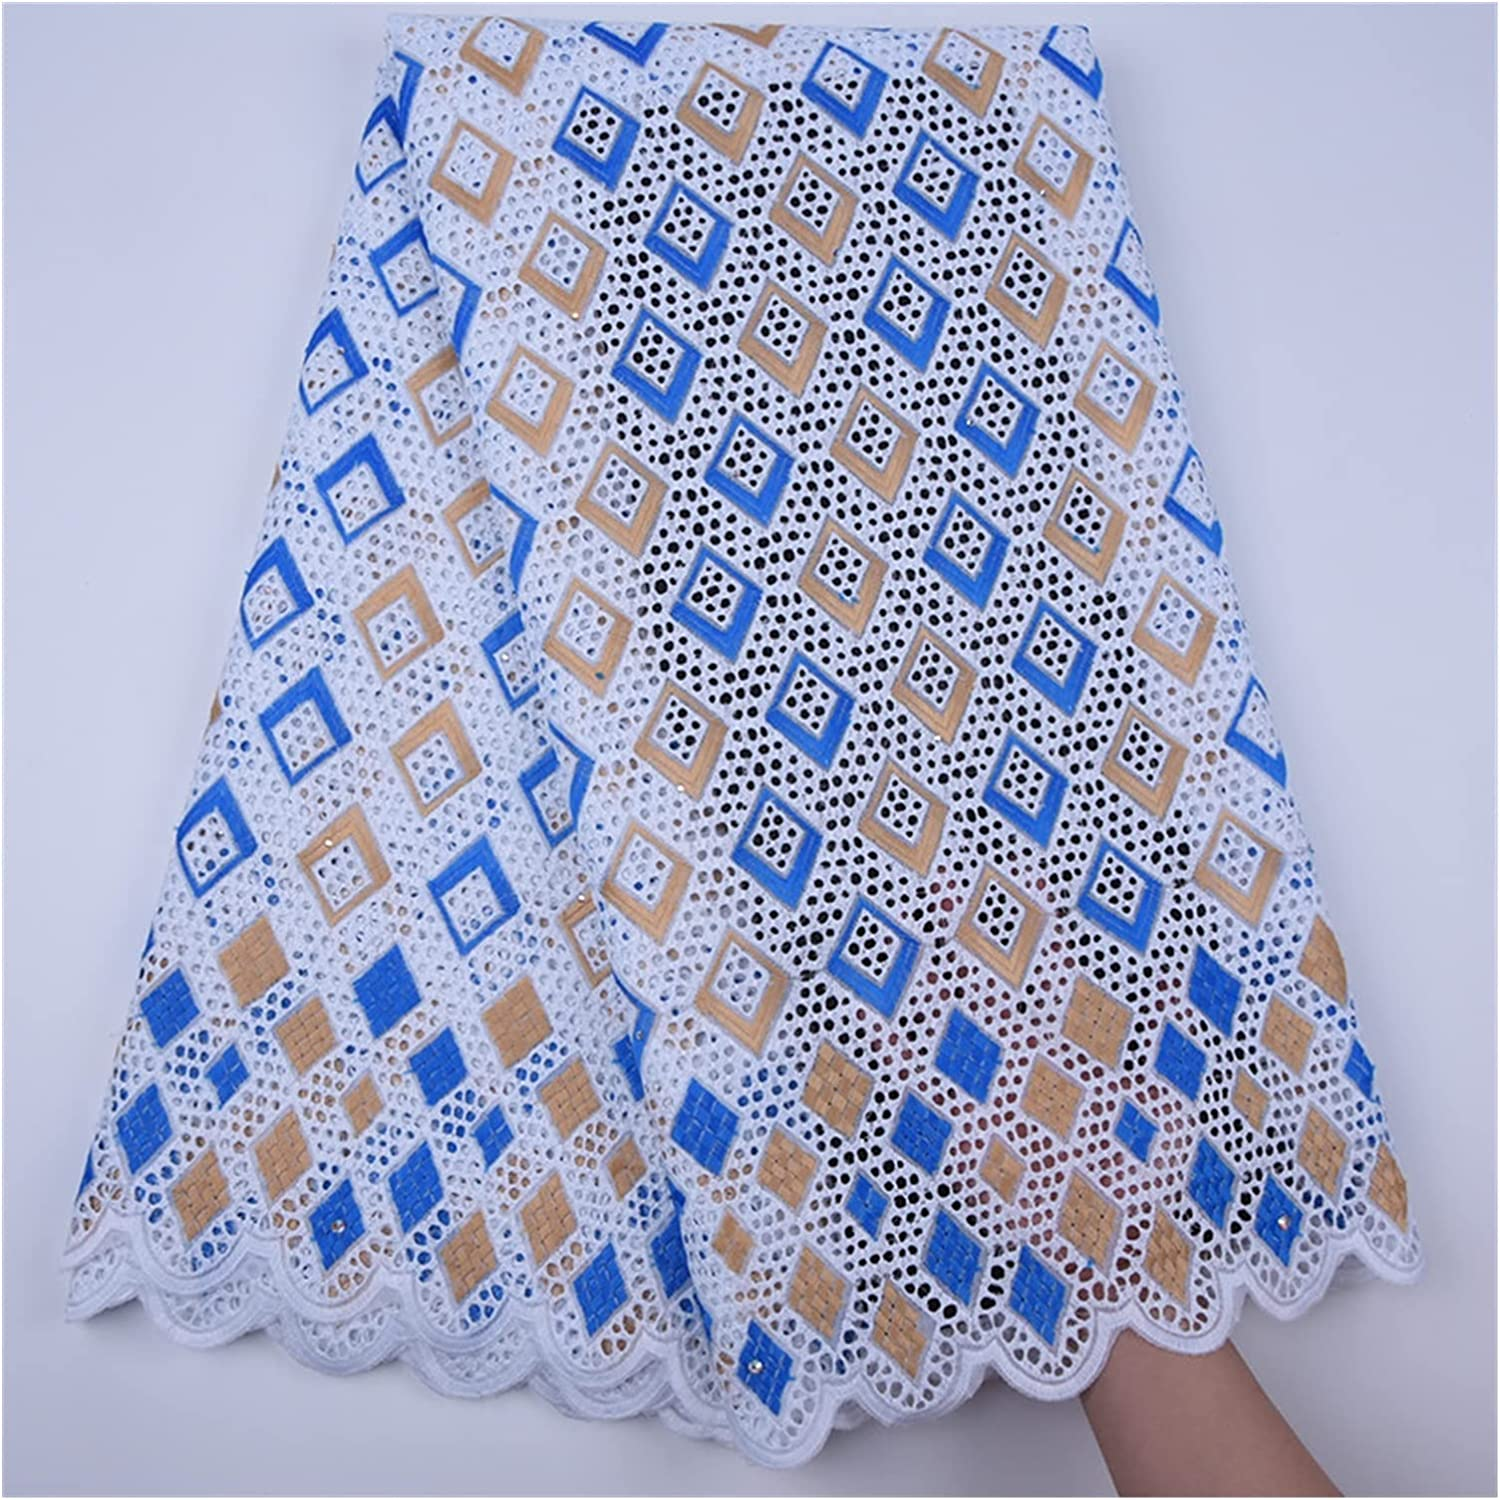 Super-cheap SHUYANshiyu Dry Lace sold out Fabric Perforated Cotton F Edge